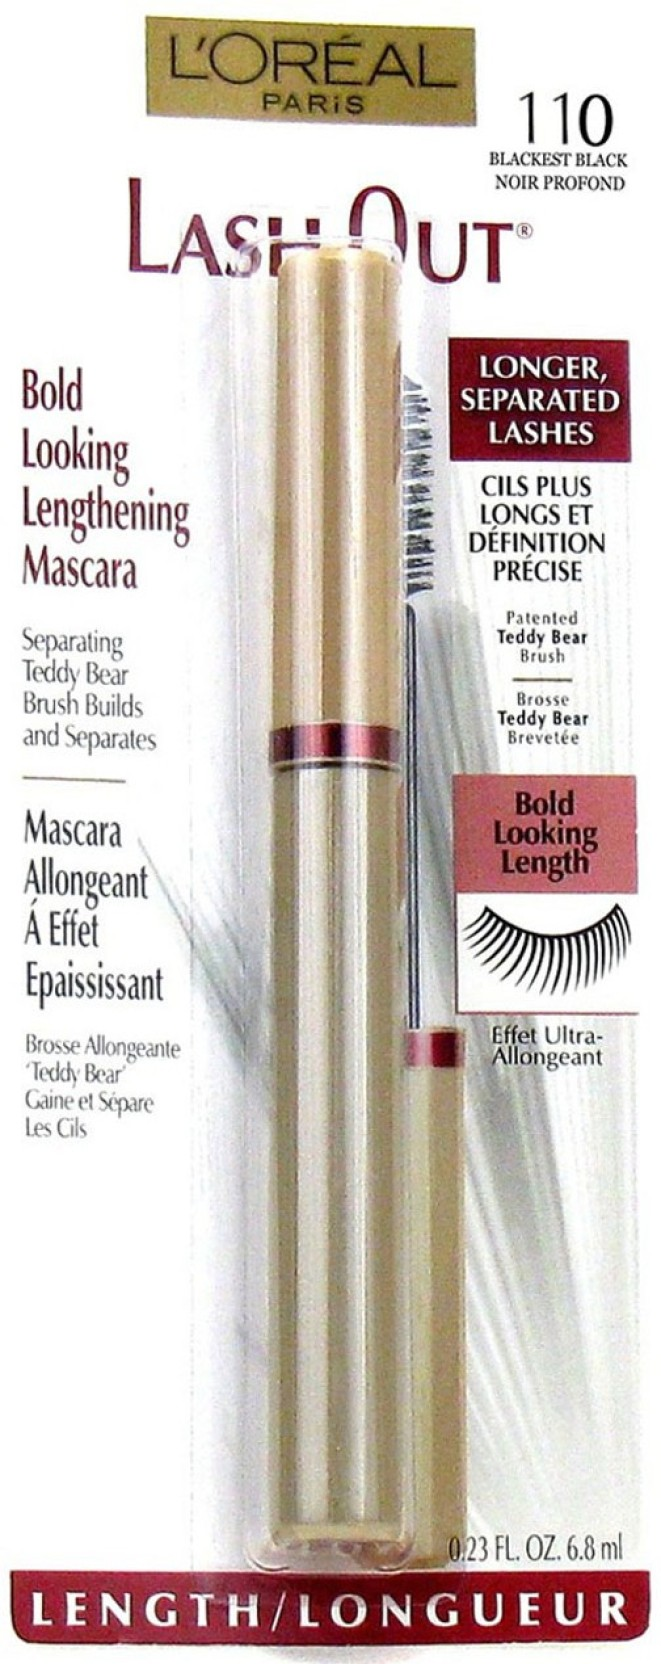 97f42434bd1 L'Oreal Paris Lash Out Bold Looking Length Mascara 6.8 ml - Price in ...